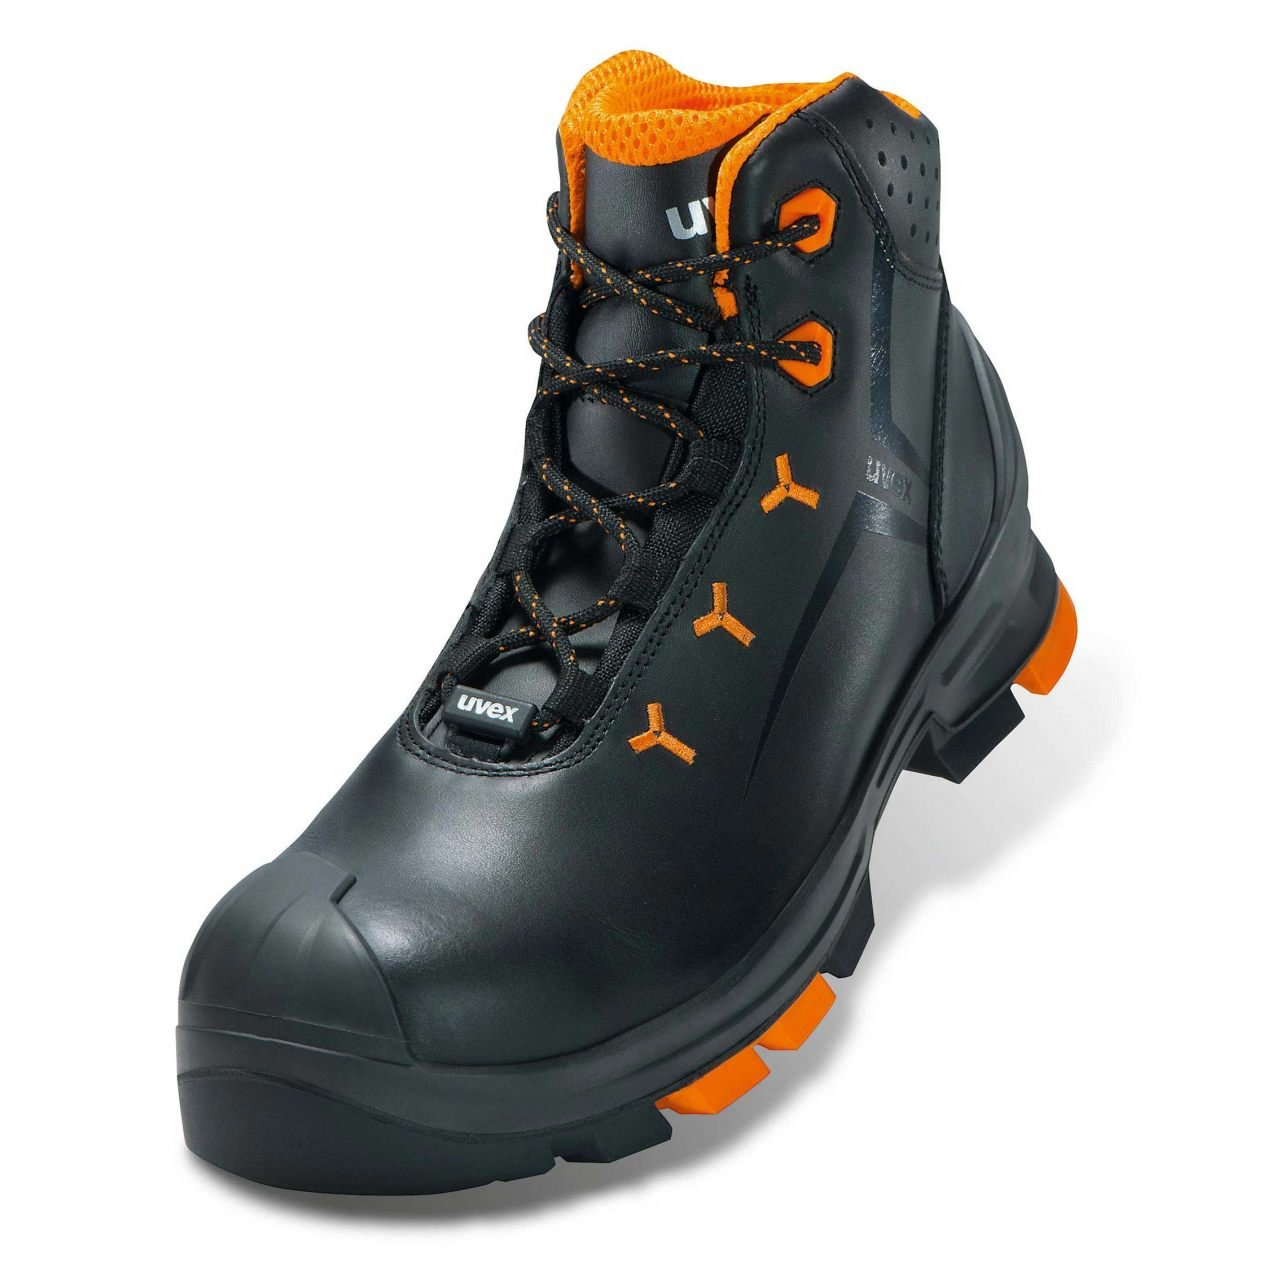 d92702fa493 Uvex 2 Safety Boots S3 Rated **New Model**